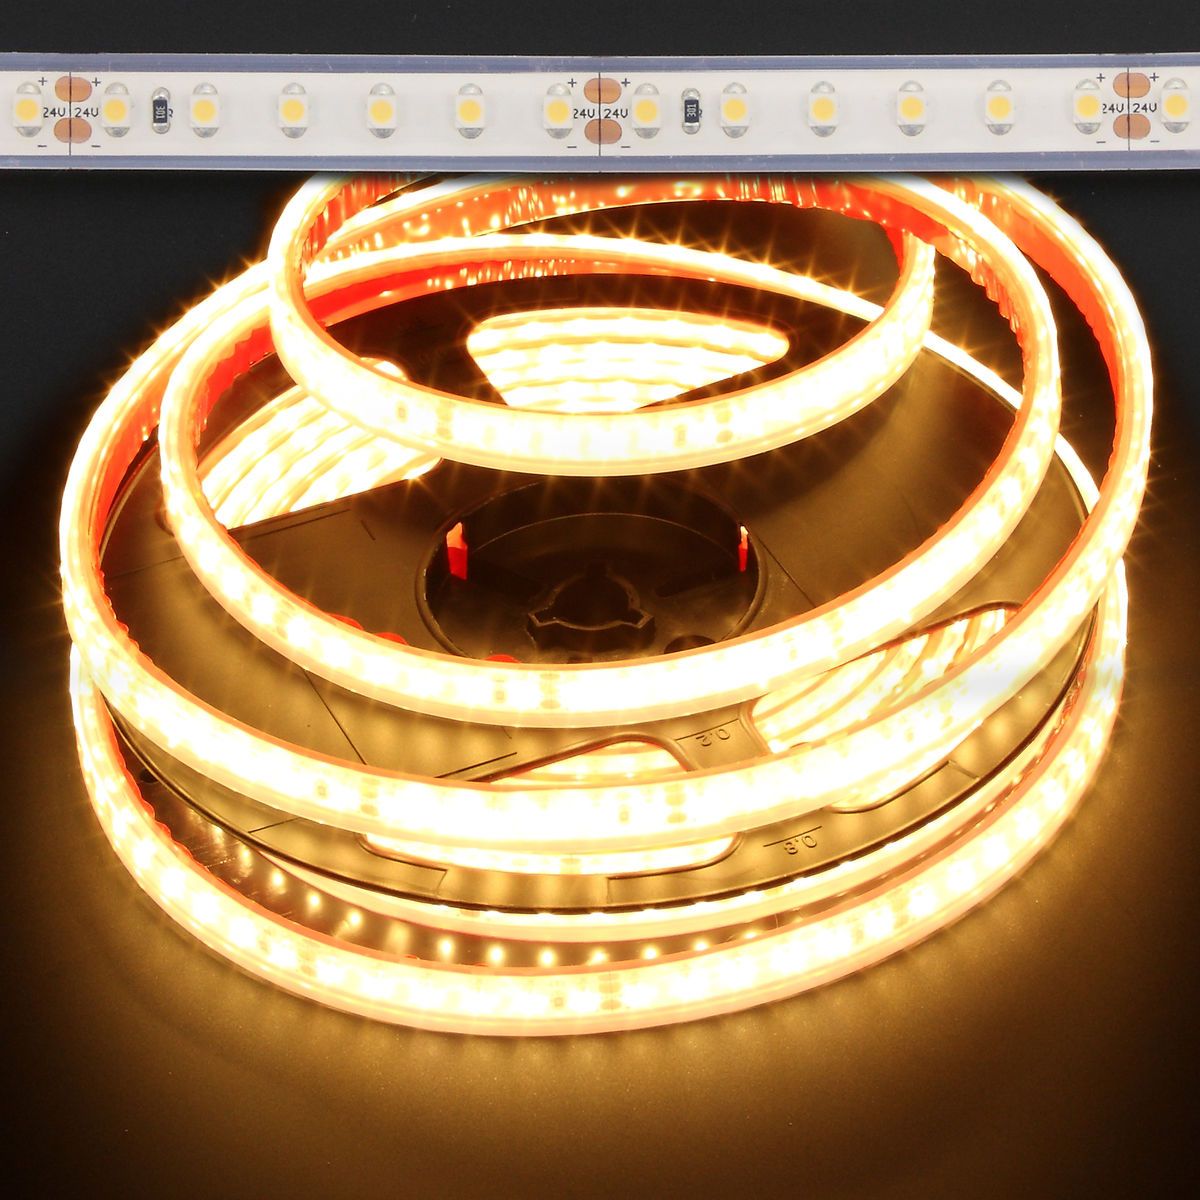 Led Strip Waterproof Candle Light Warm White Waterproof Eco 3528 48w Led Strip Light 2400k